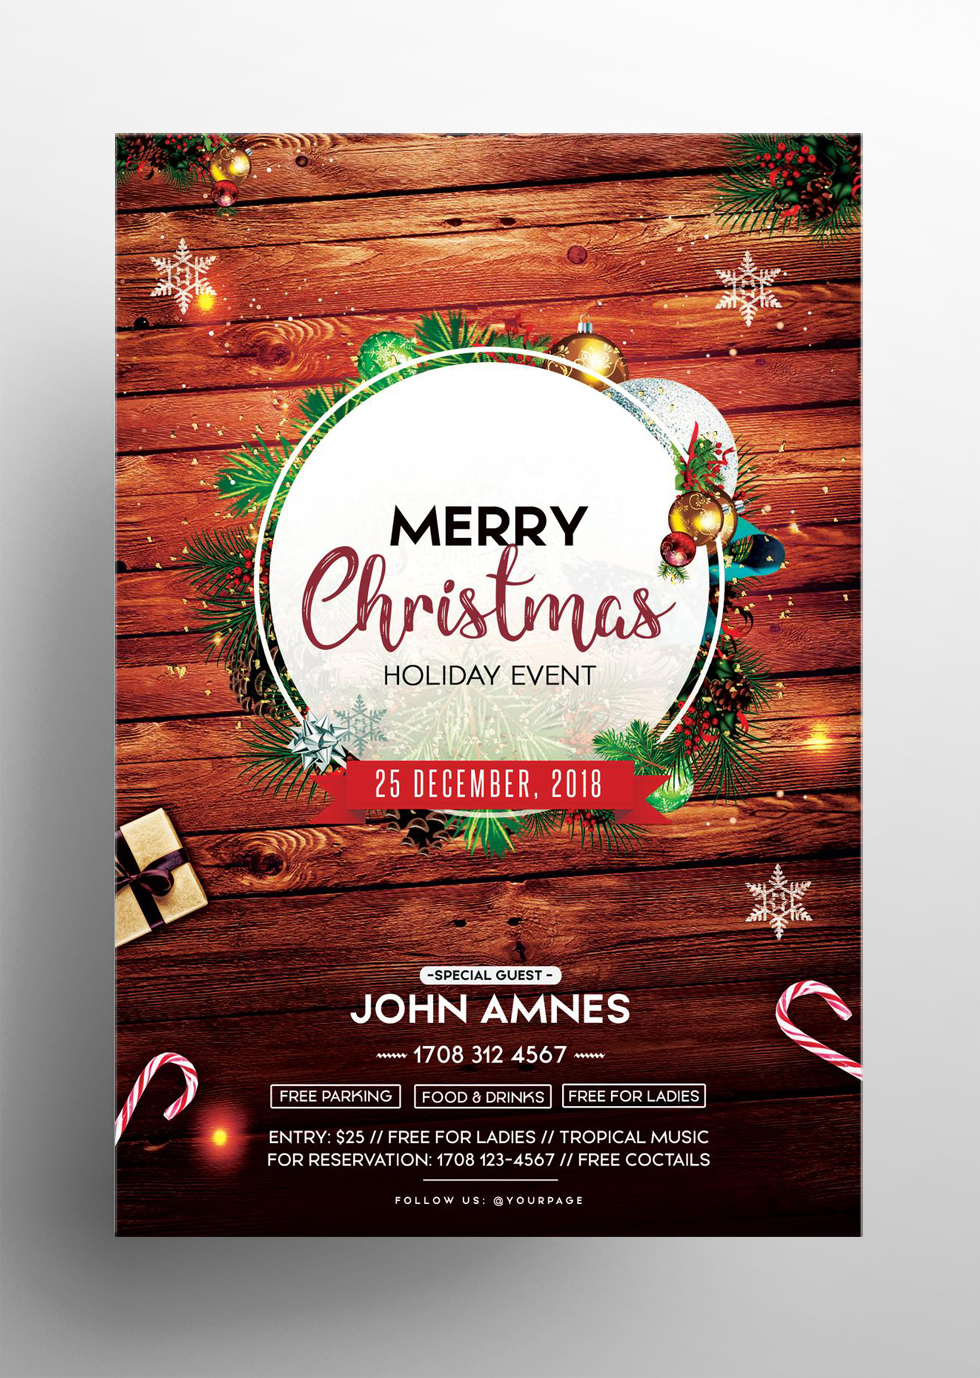 Merry Christmas 2018 Free PSD Flyer Template